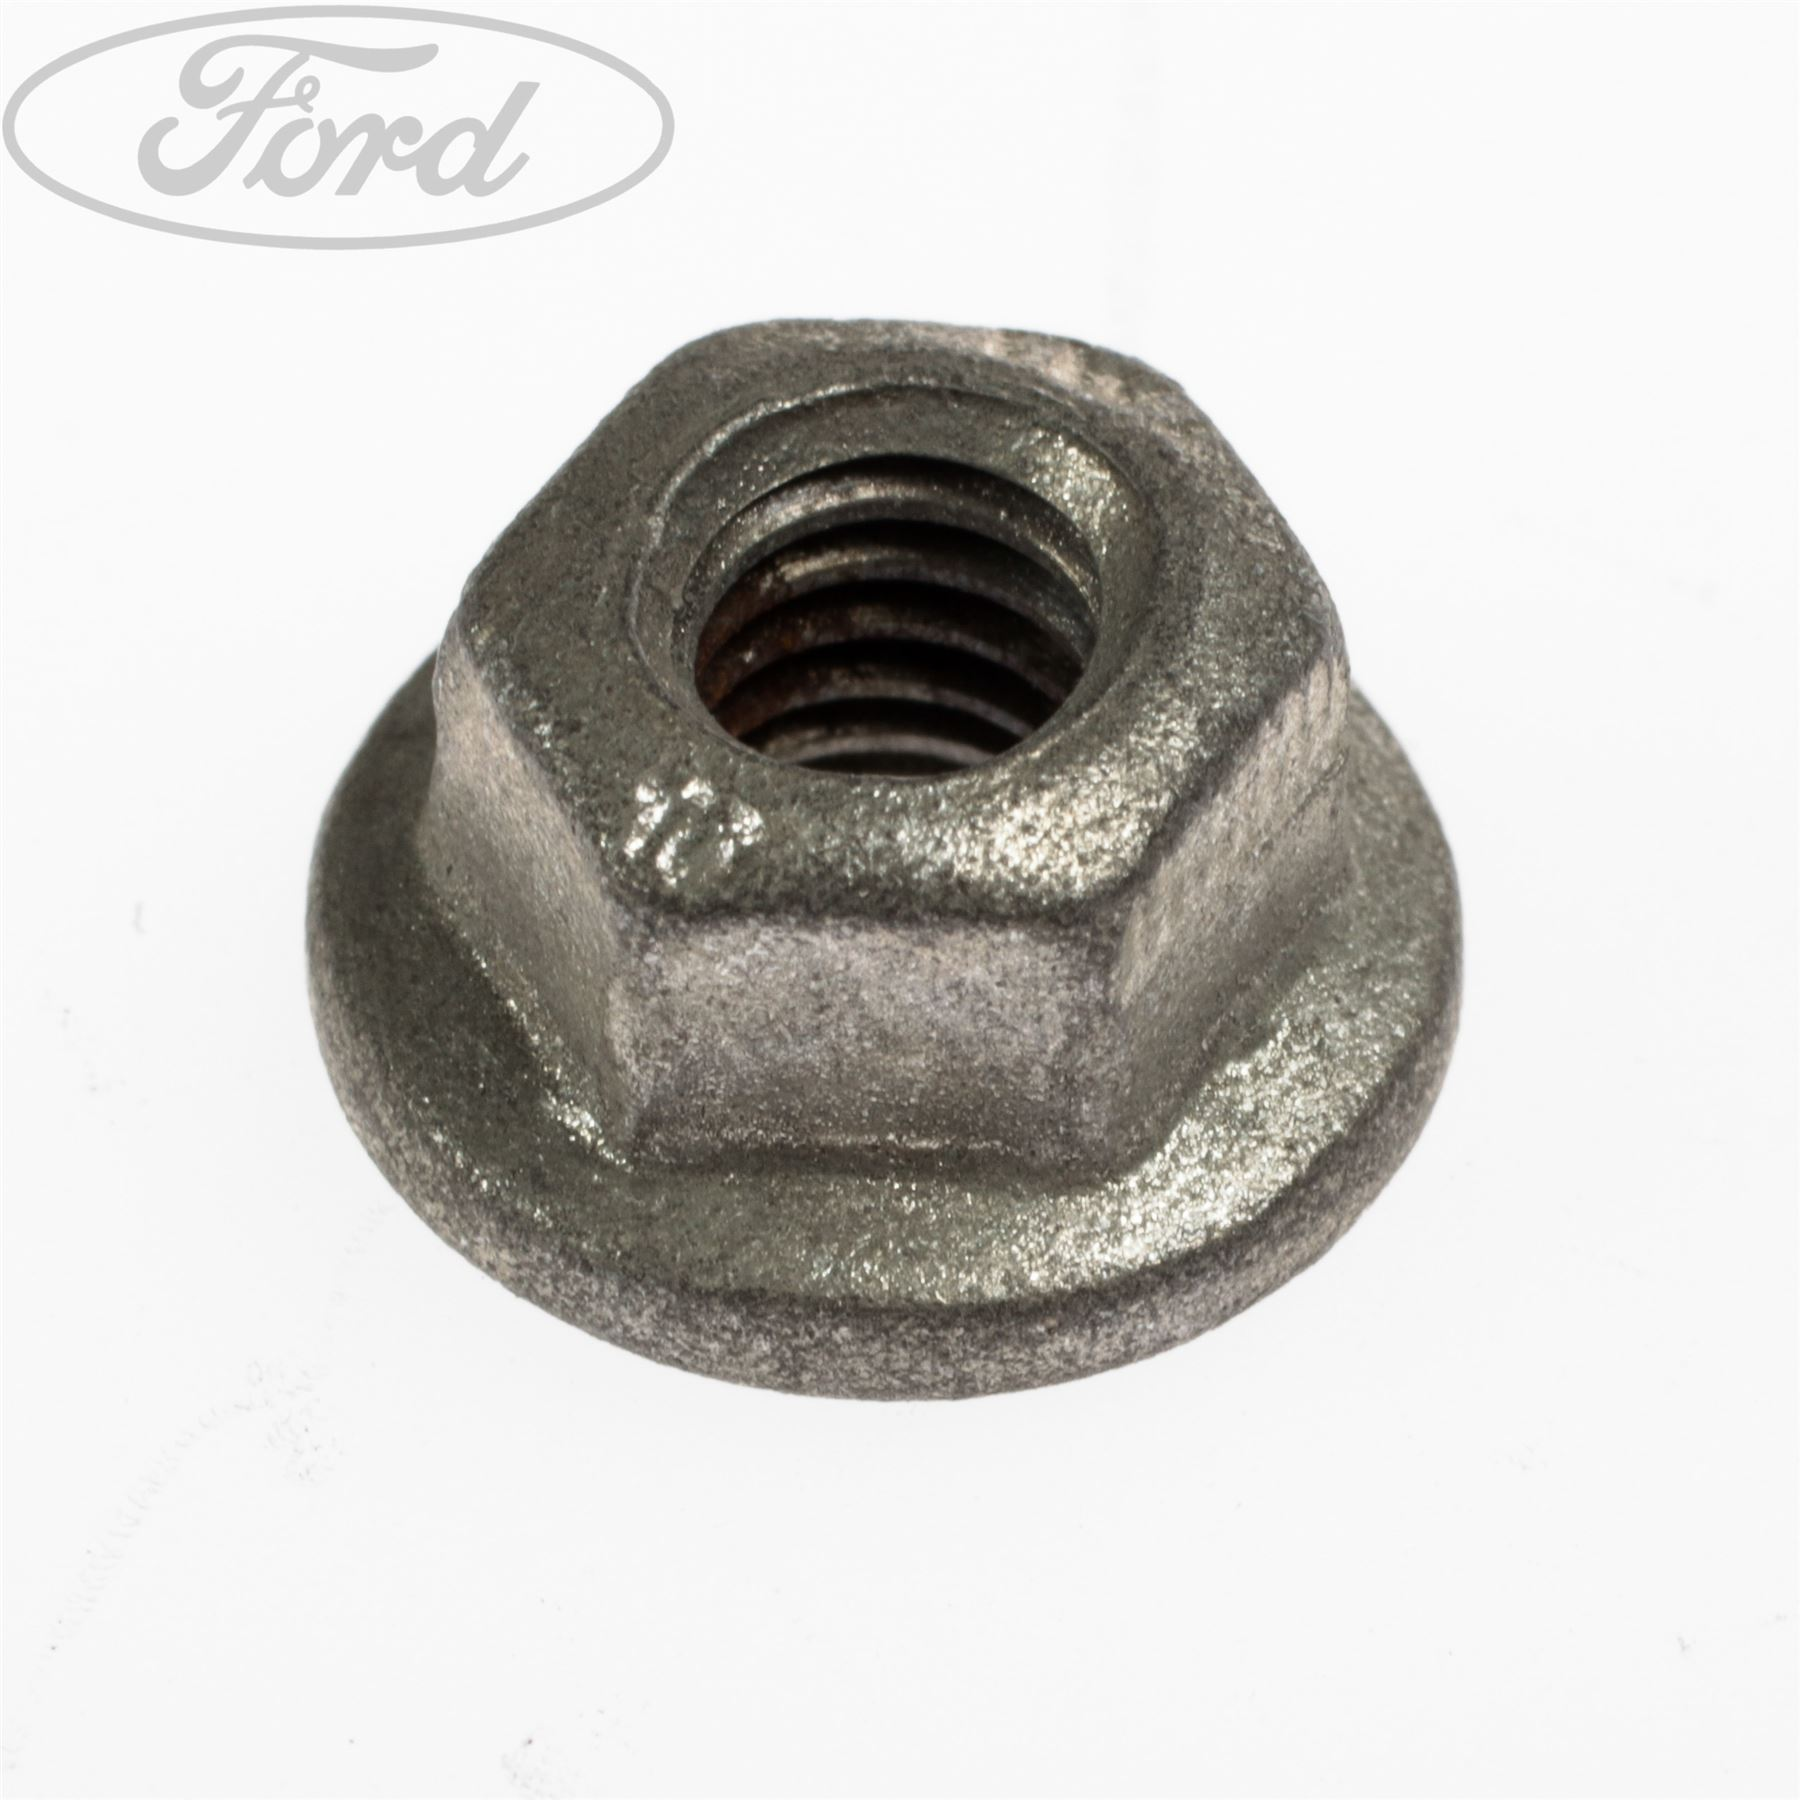 hight resolution of details about genuine ford mondeo mk4 galaxy s max fuse holder circuit breakers nut 1381964